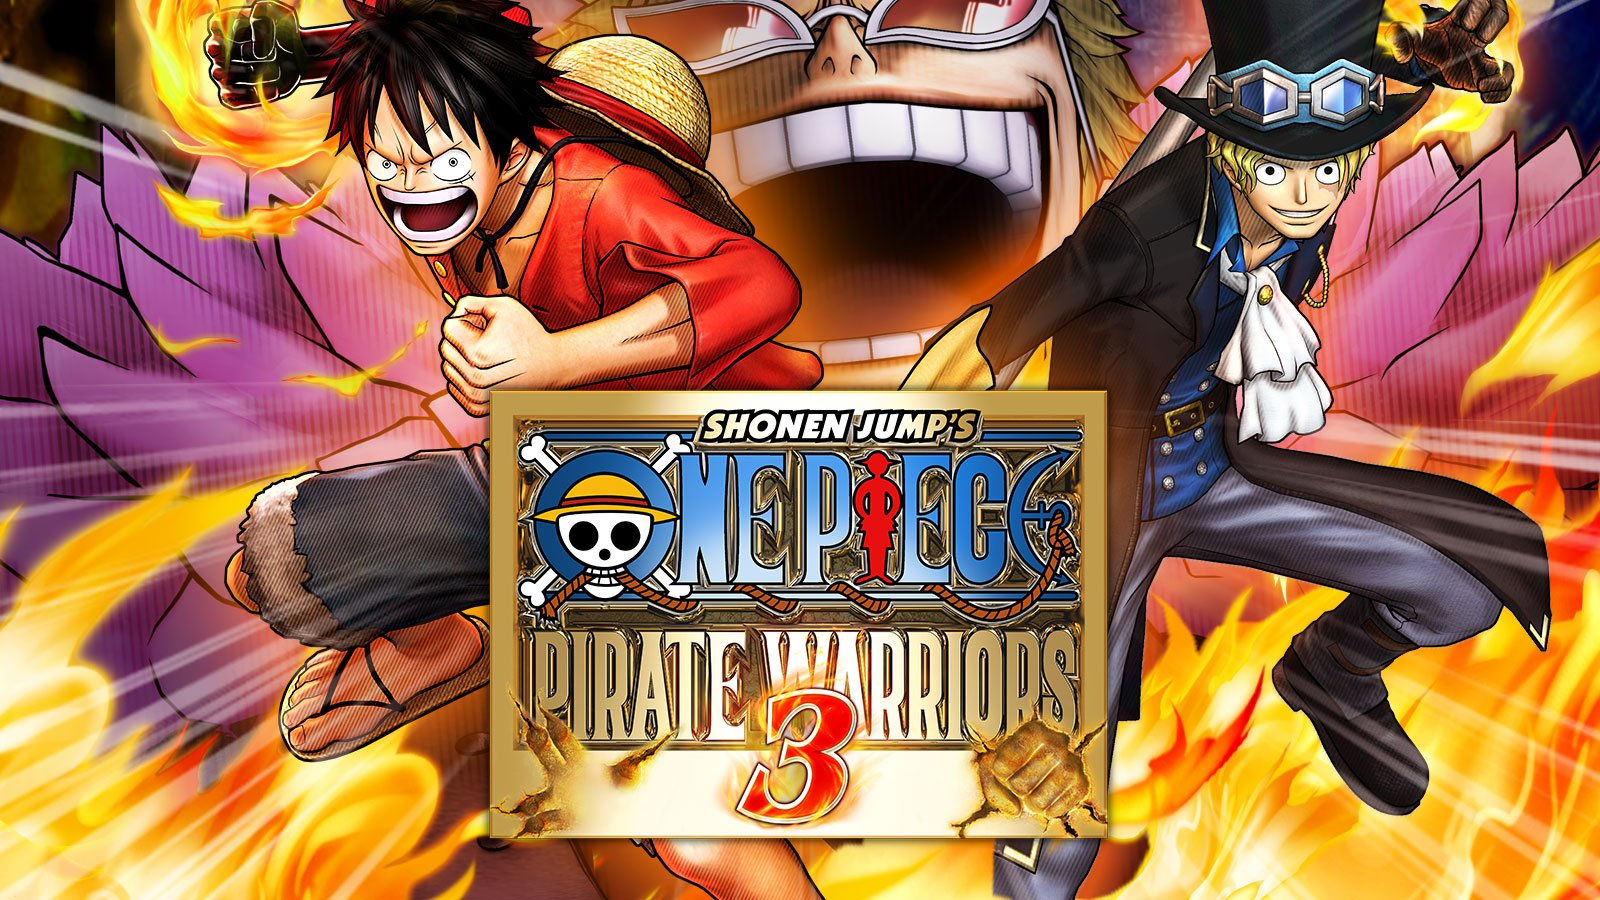 One Piece Pirate Warriors 3 (Steam) RU/CIS 2019